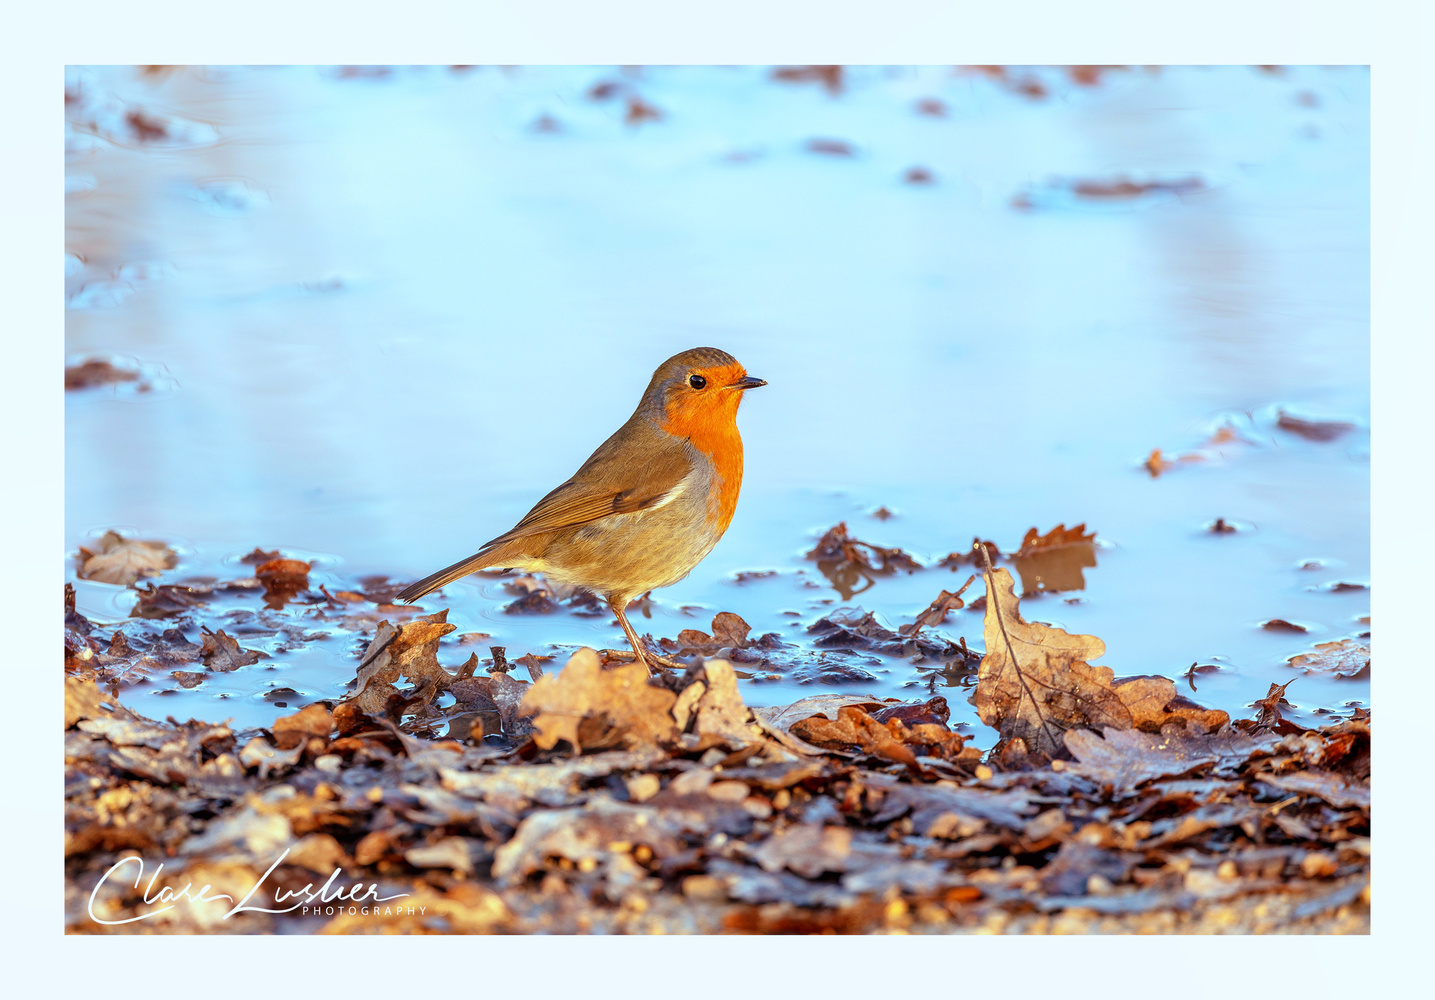 European robin by Clare Lusher